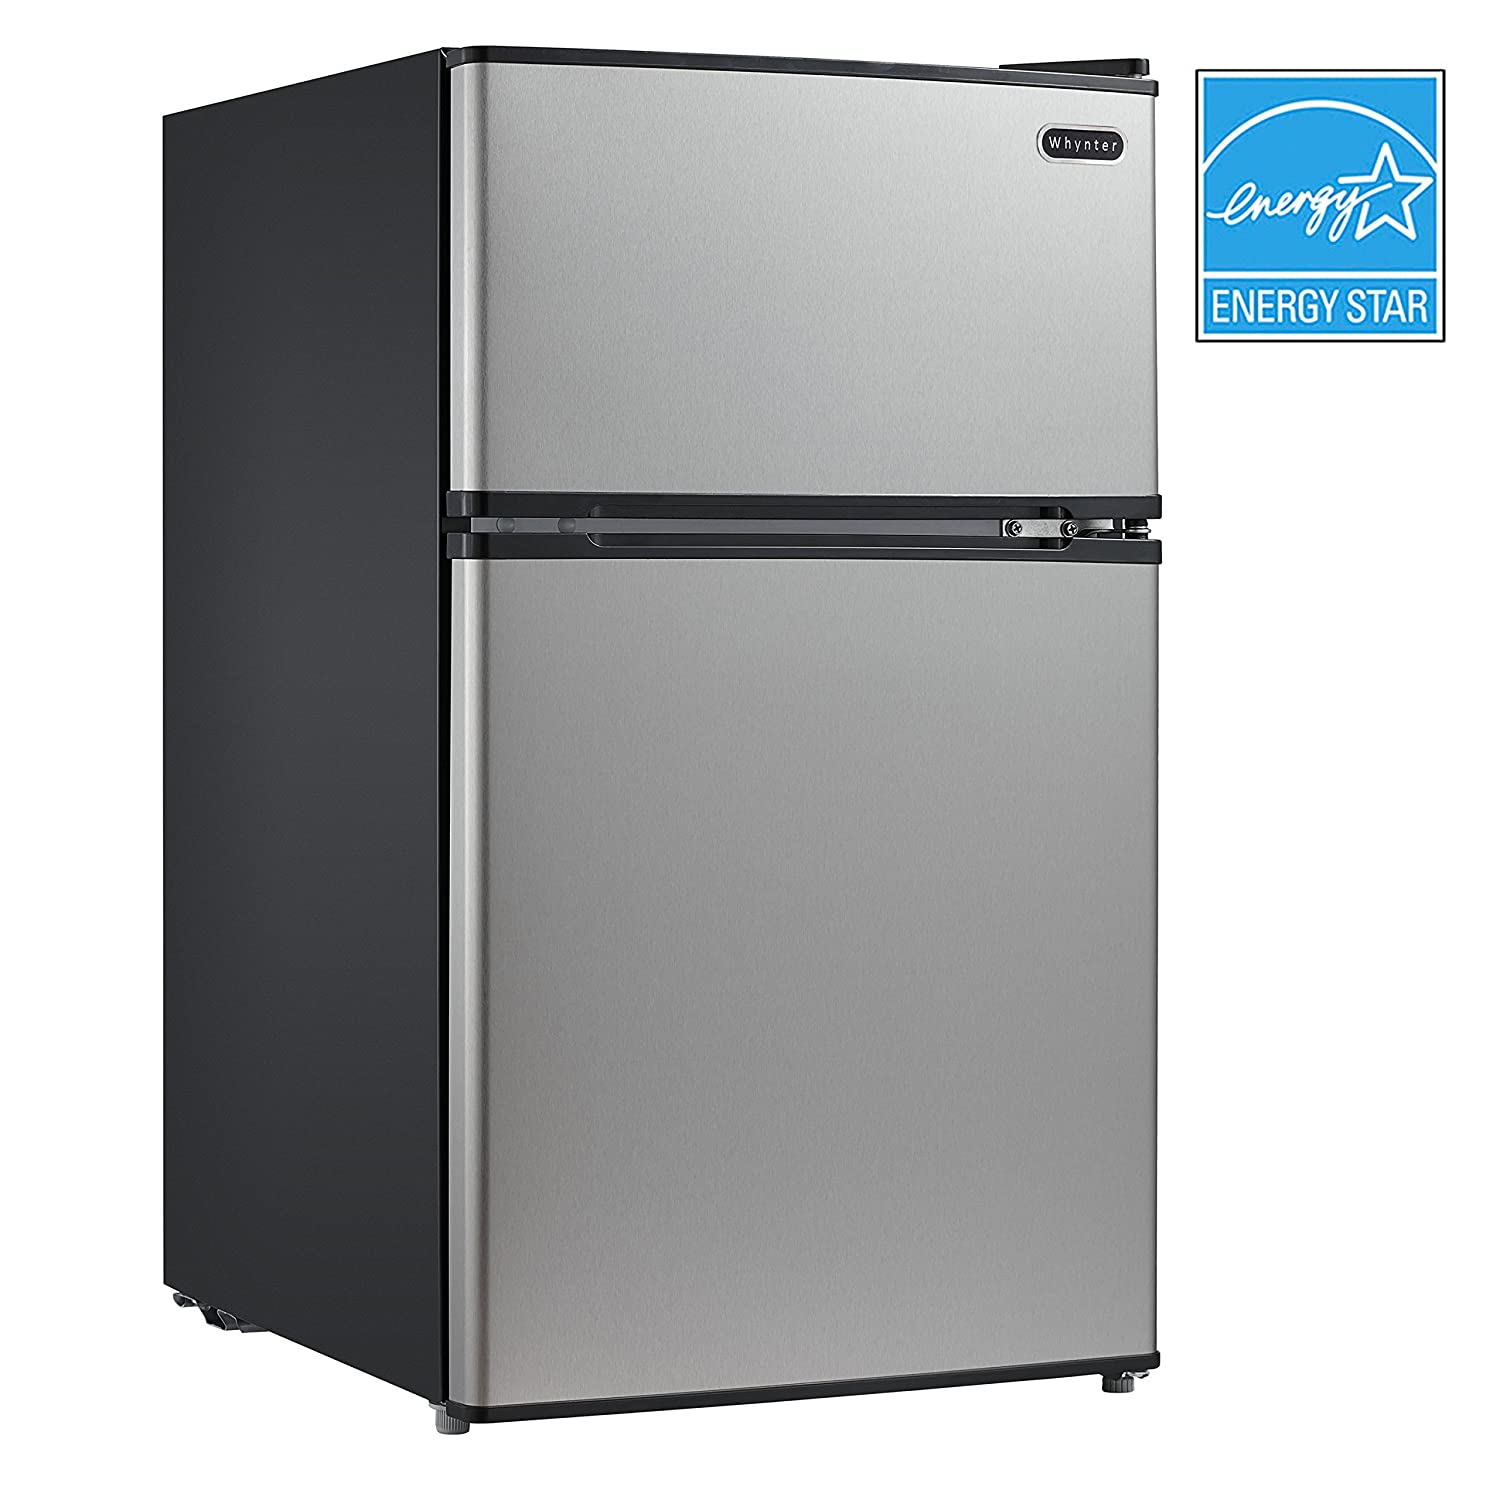 Energy Star Kitchen Appliances Amazoncom Whynter Mrf 340ds 34 Cubic Feet Energy Star Stainless